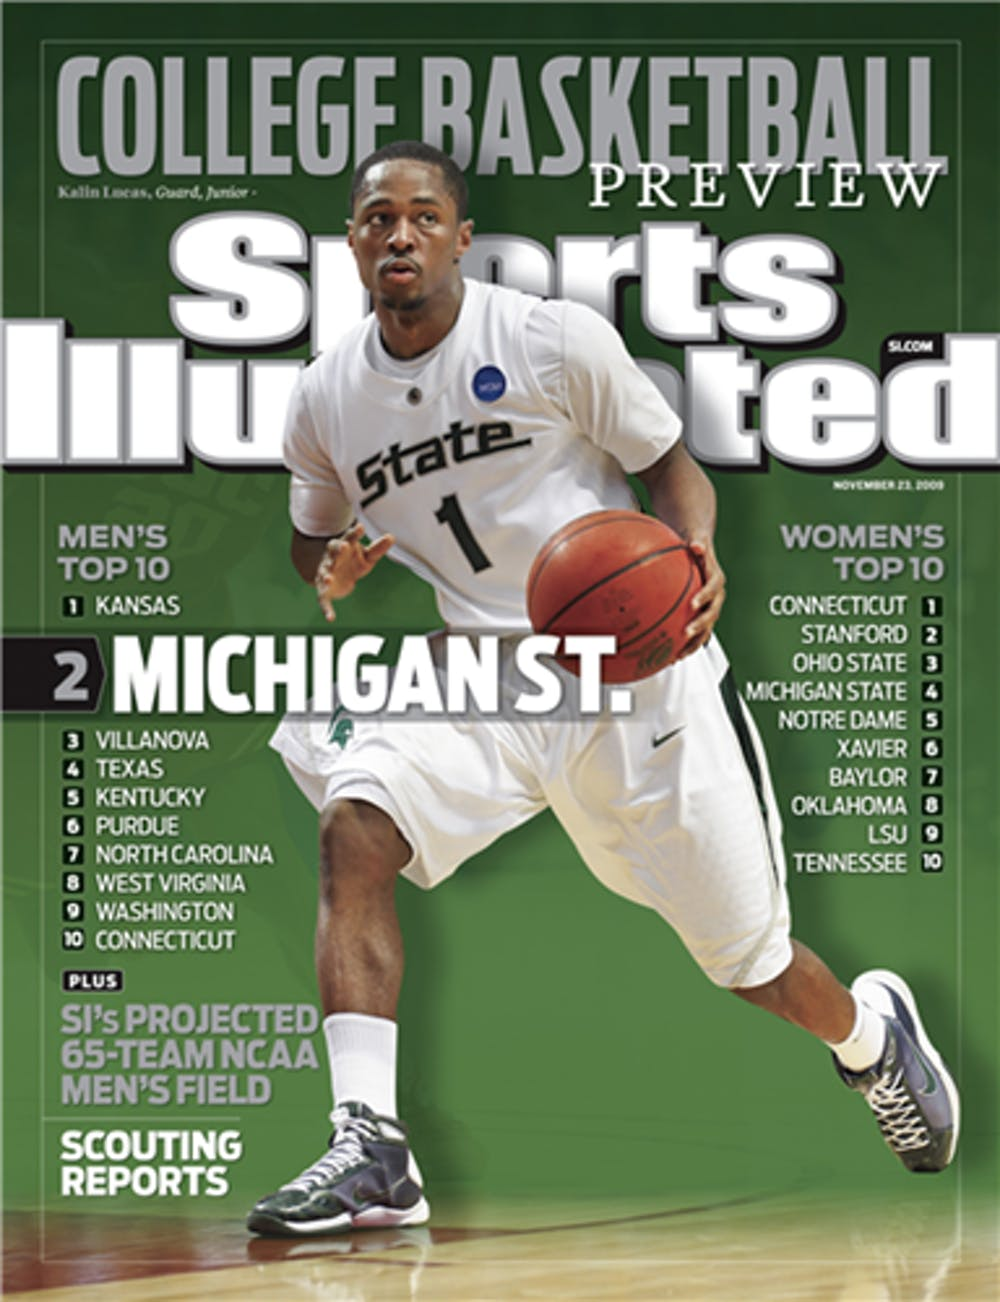 0003831-2009-college-basketball-preview-michigan-state-500-jpeg